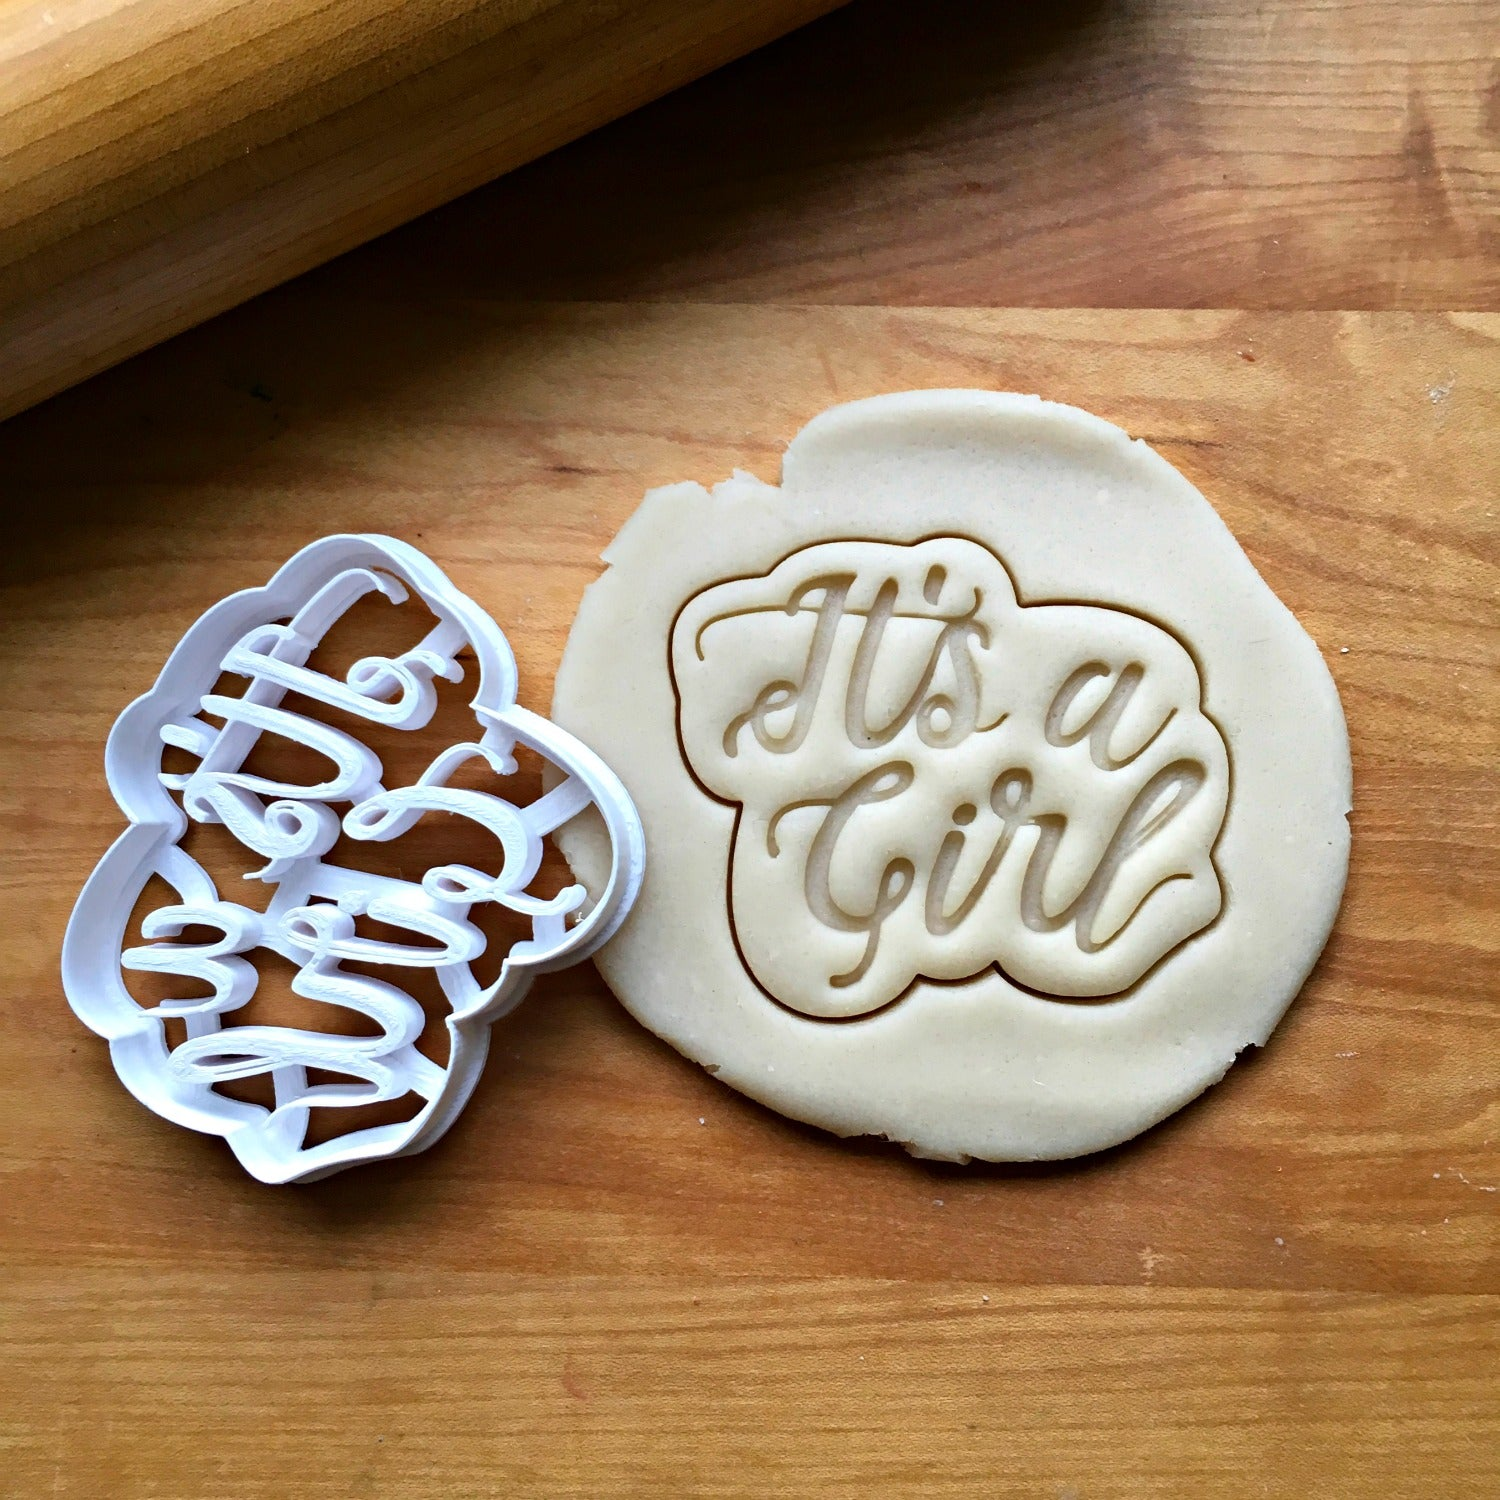 It's A Girl Script Cookie Cutter/Dishwasher Safe